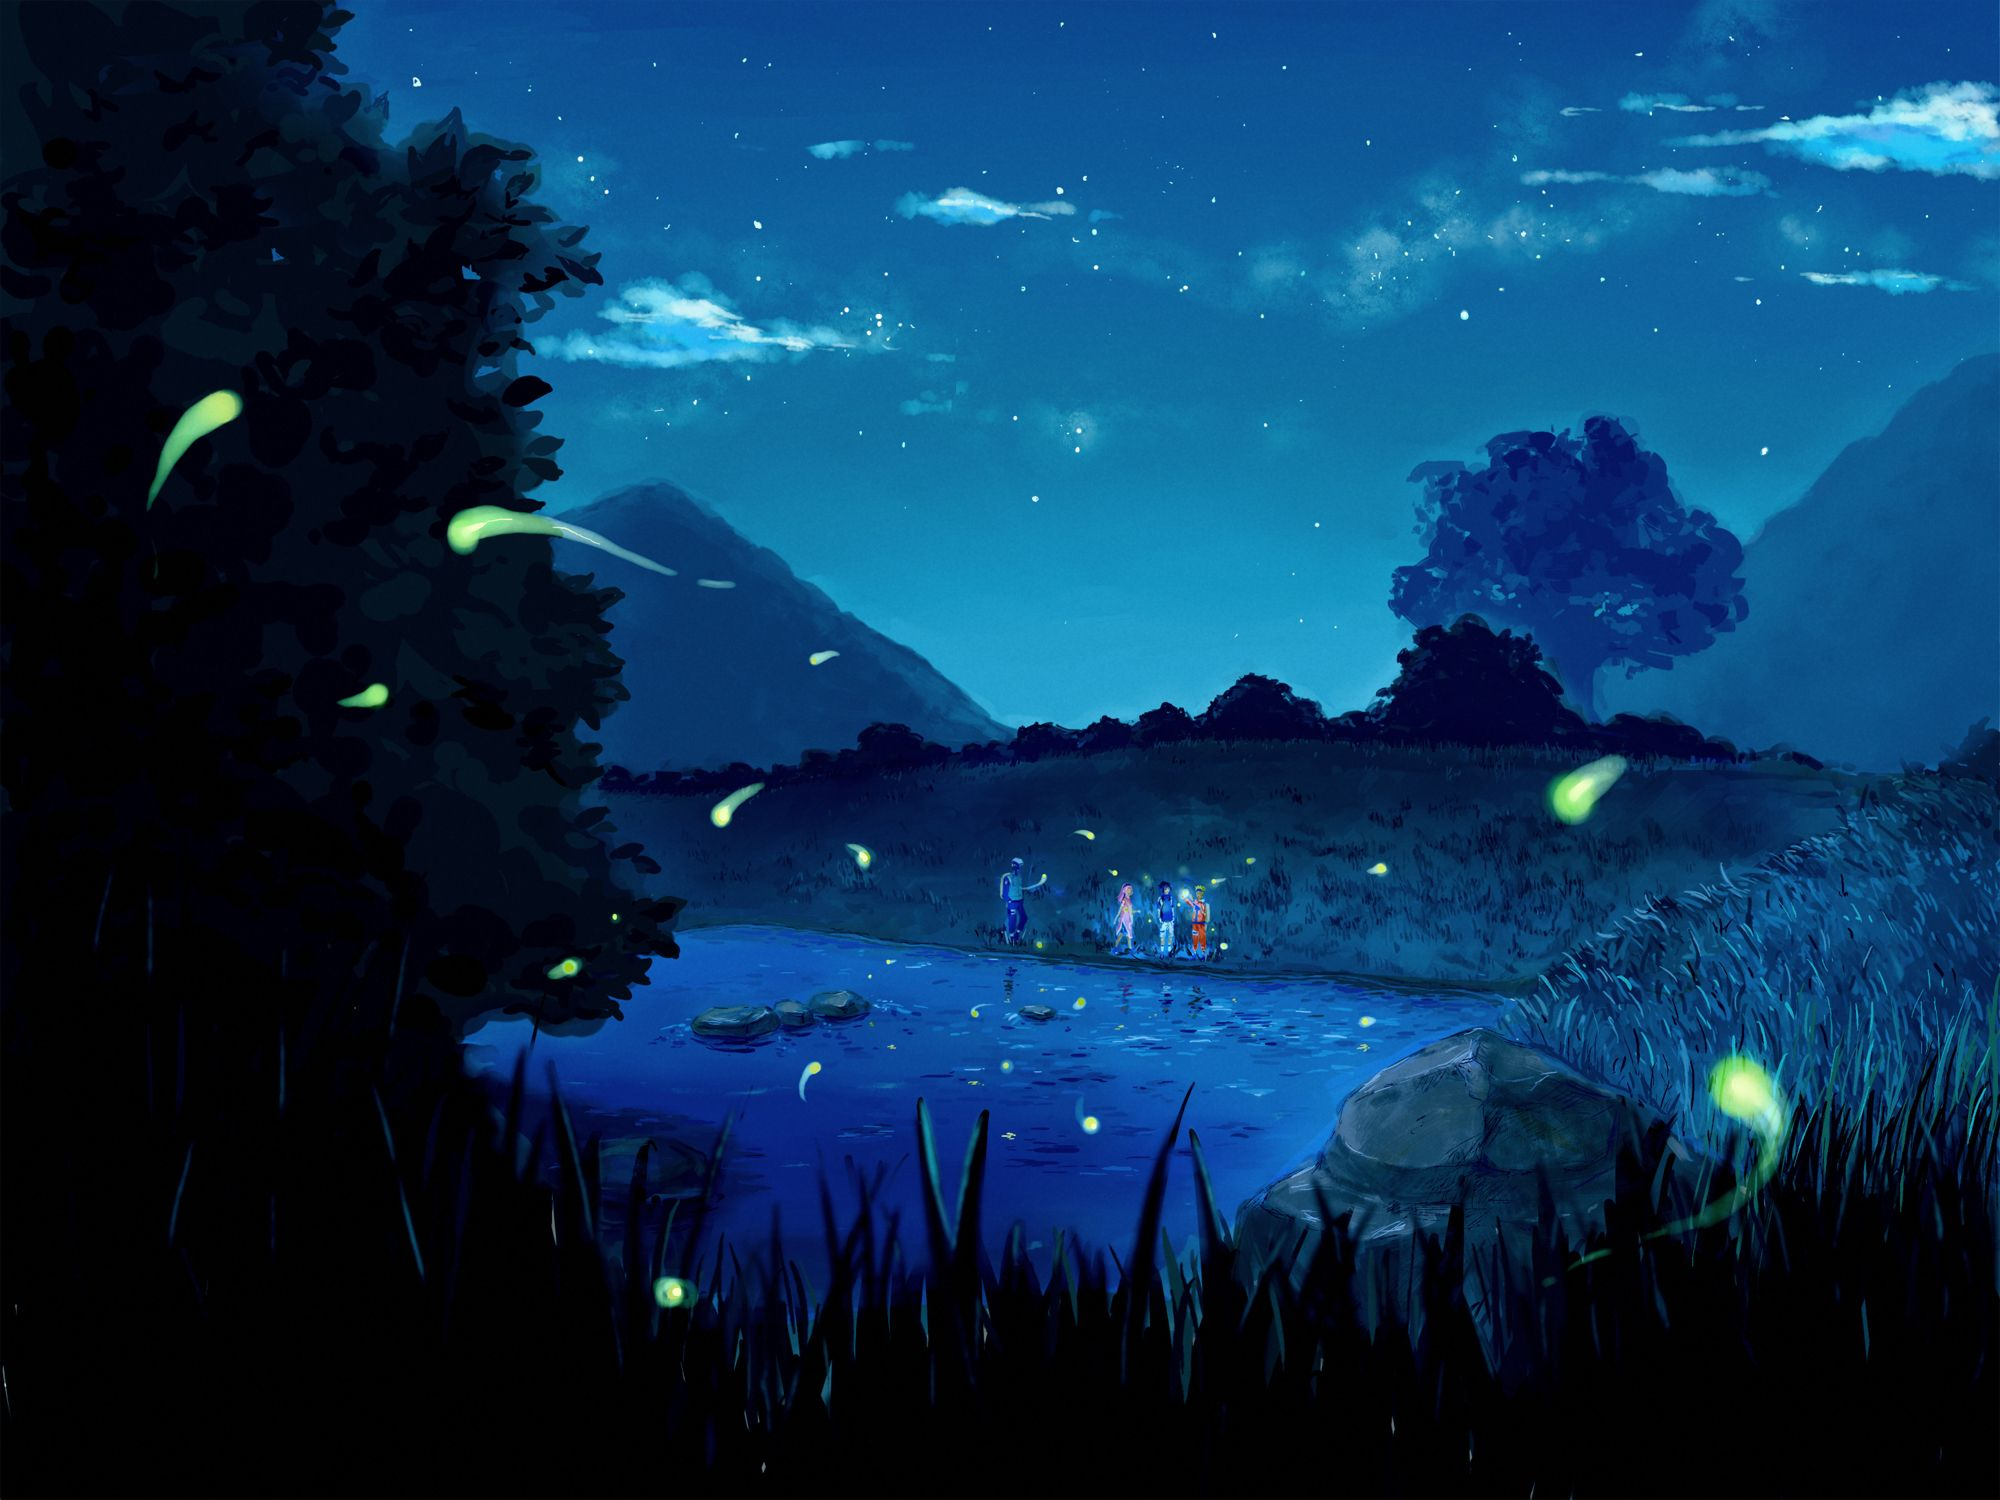 Anime Naruto Night Lake Star Clouds Nature Trees Mountains Friends Team Jpg